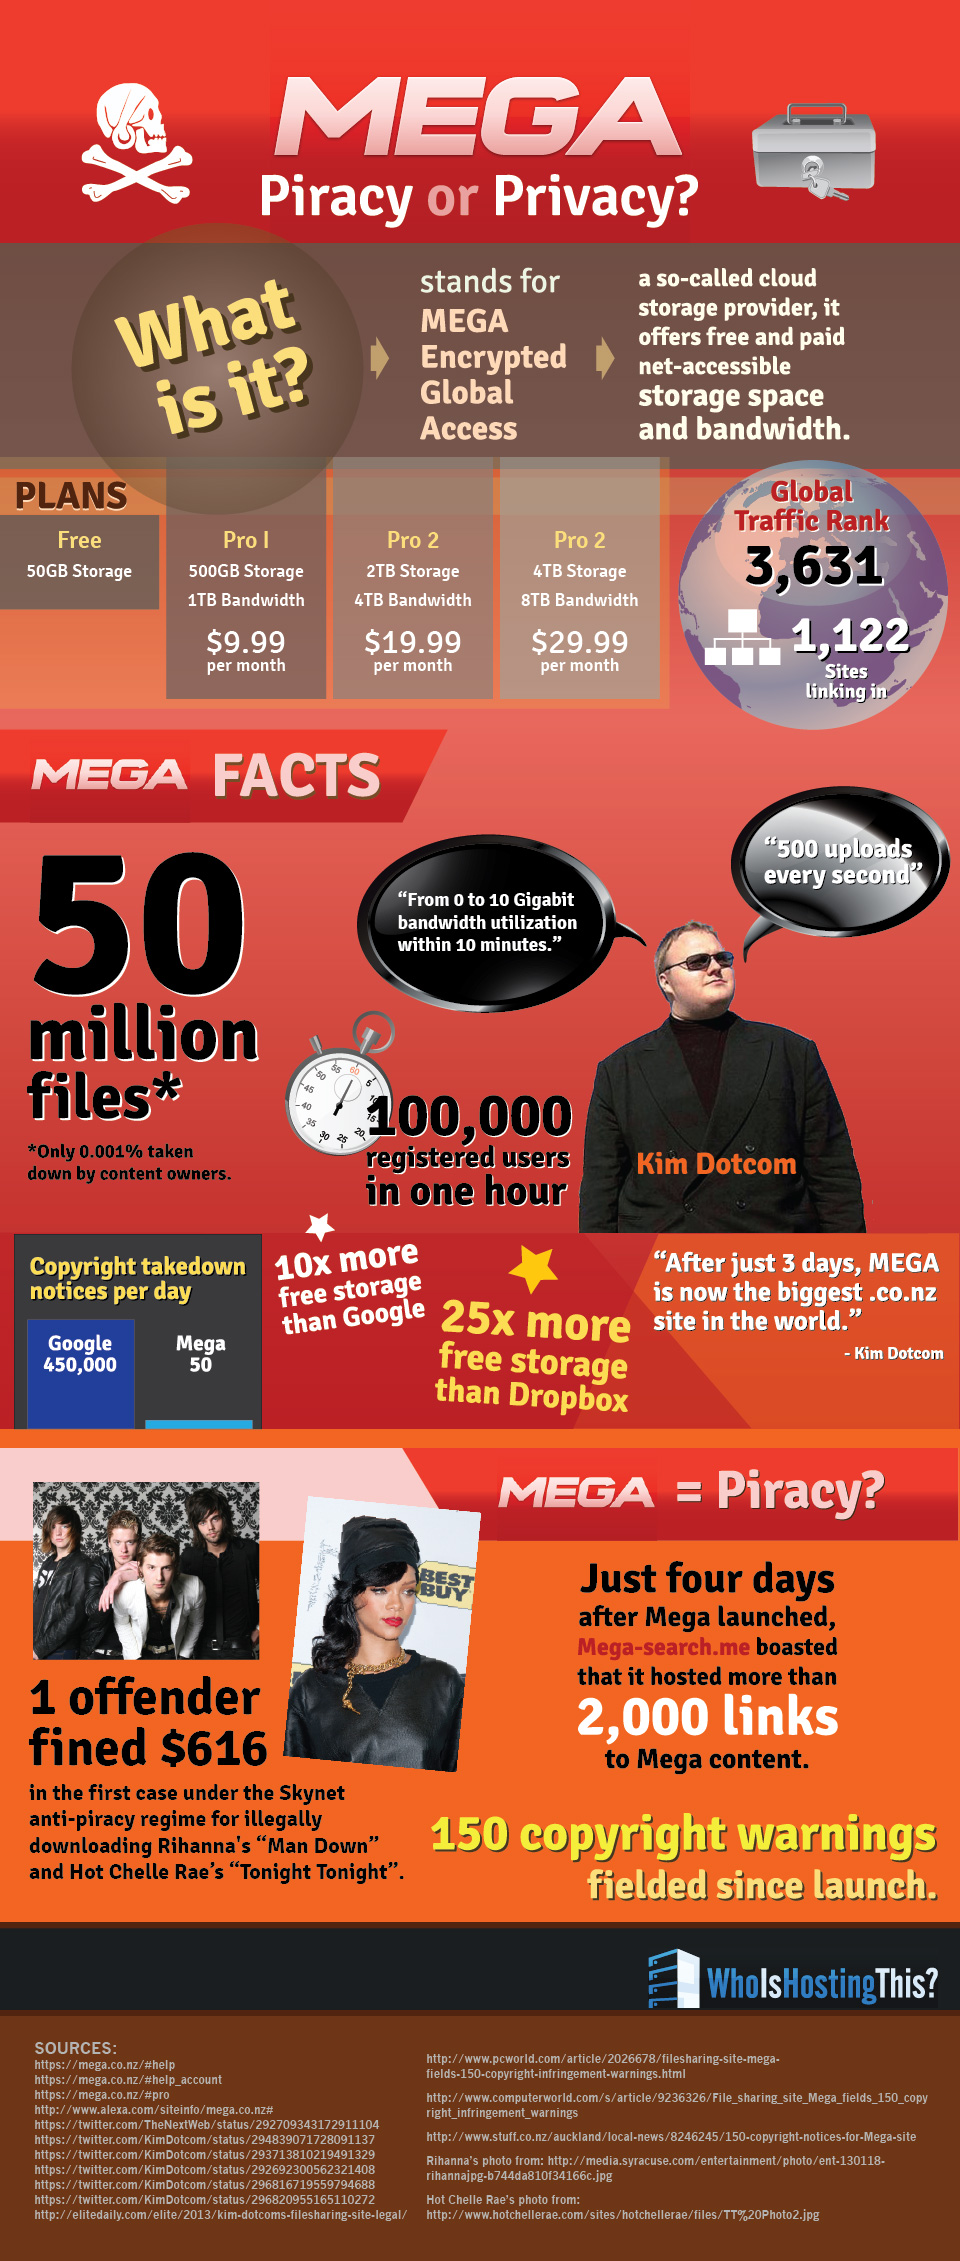 Look out Dropbox and Google Drive, MEGA's Here